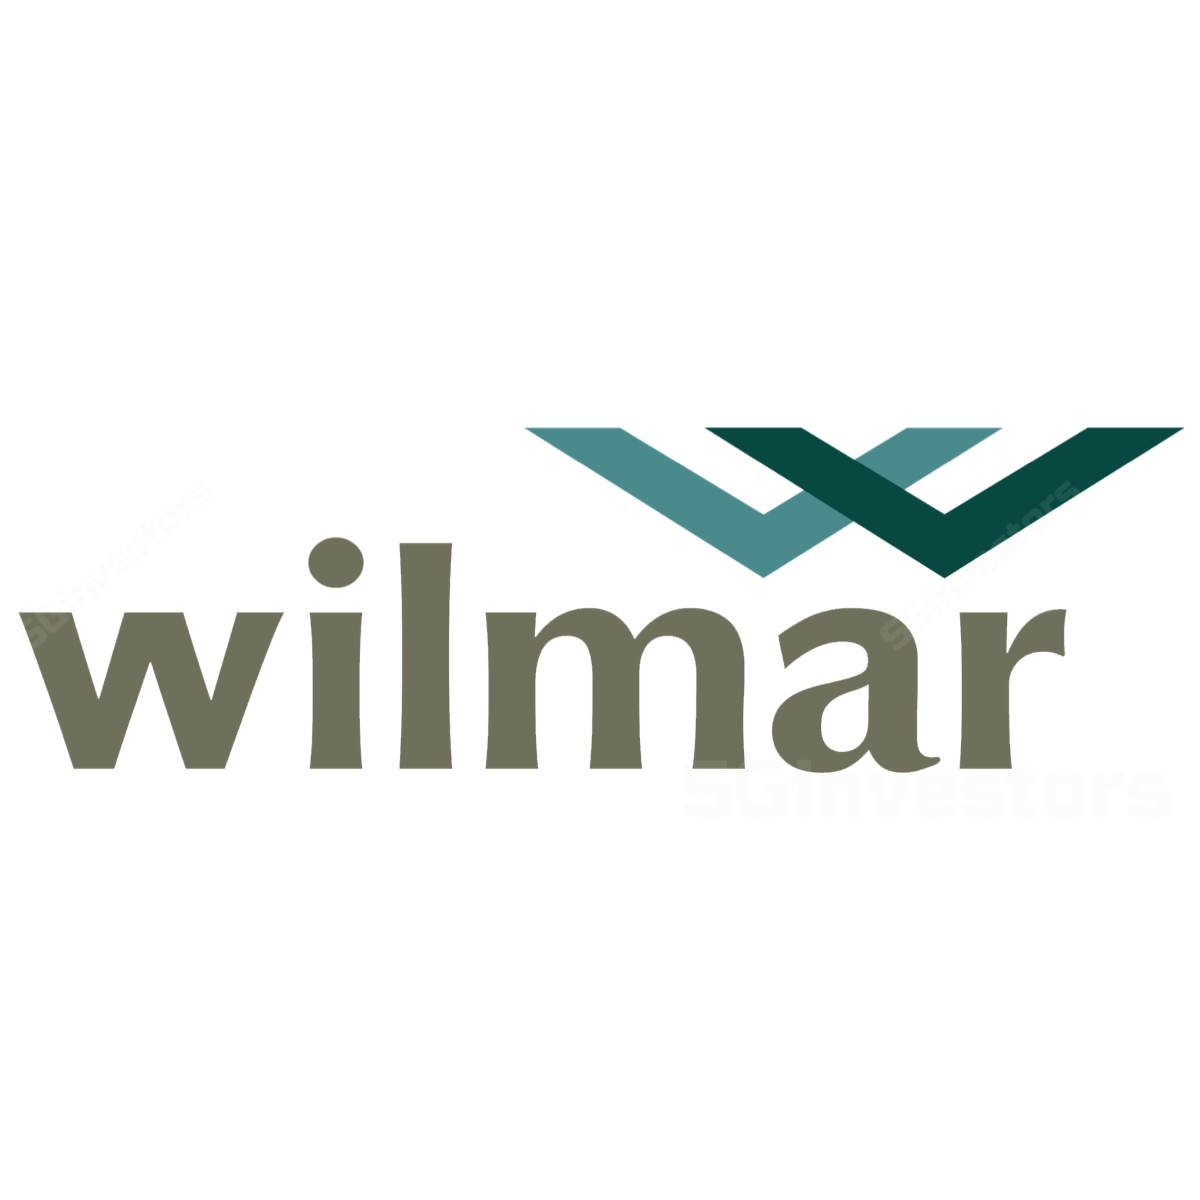 Wilmar - RHB Invest 2017-08-11: Double Whammy From Palm And Soybeans